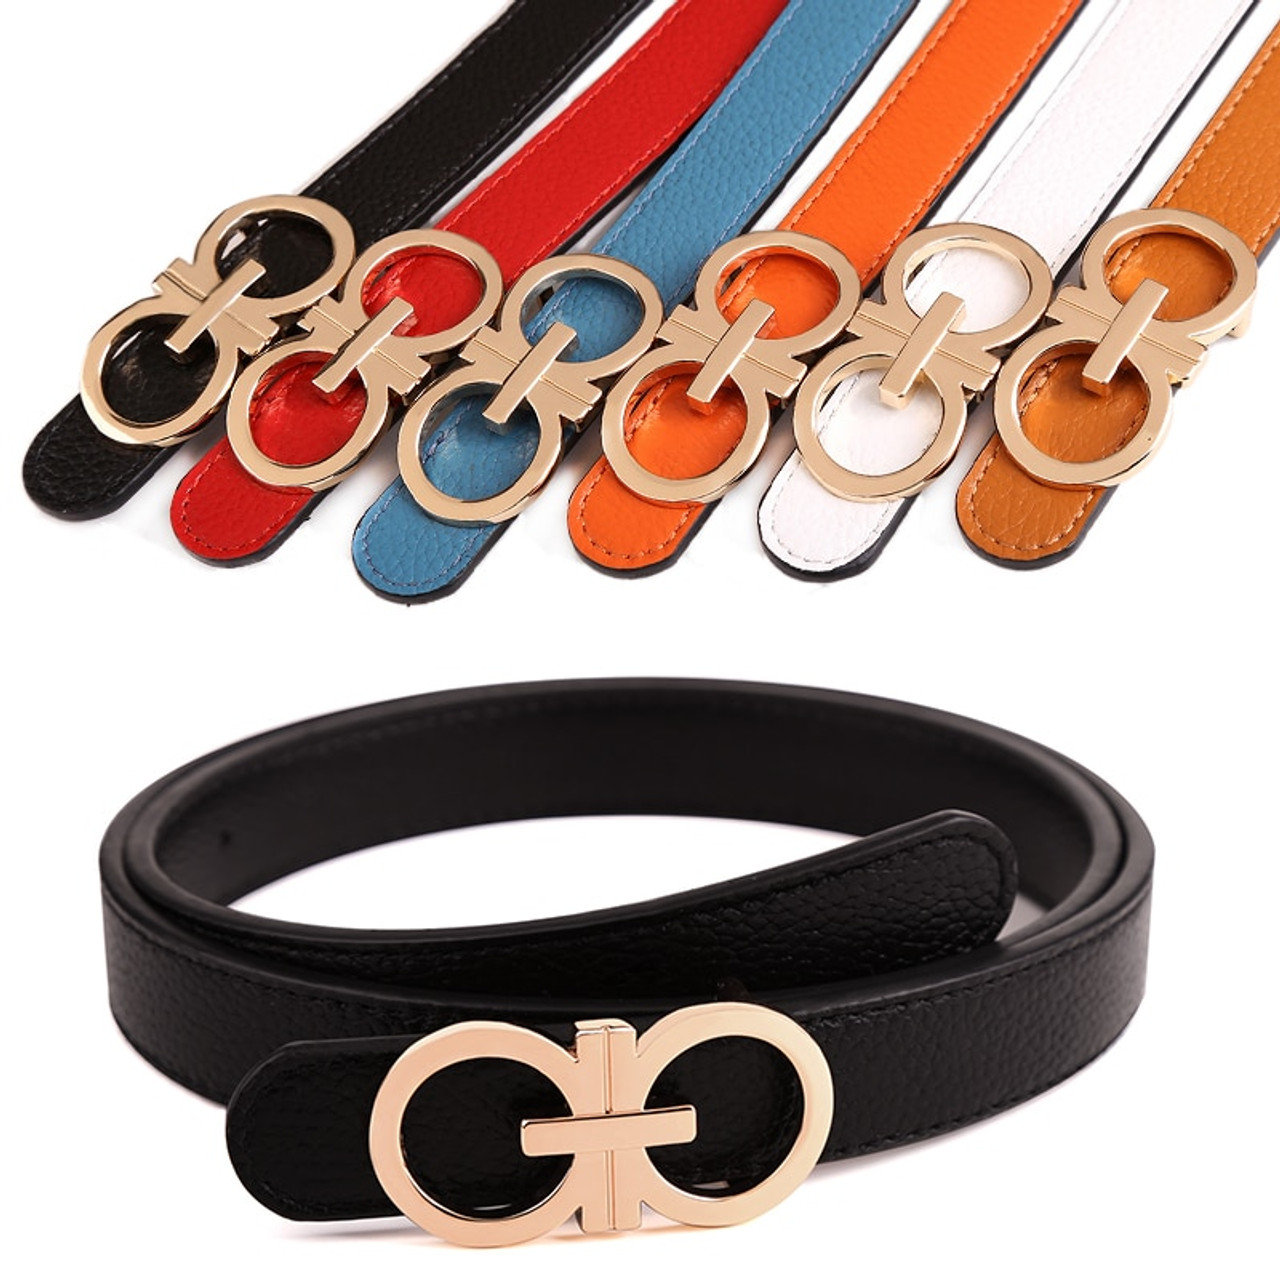 2a89354278a Designer Belts Women High Quality Luxury Brand Ceinture Femme Casual double  gg Lady Belt genuine Leather ...